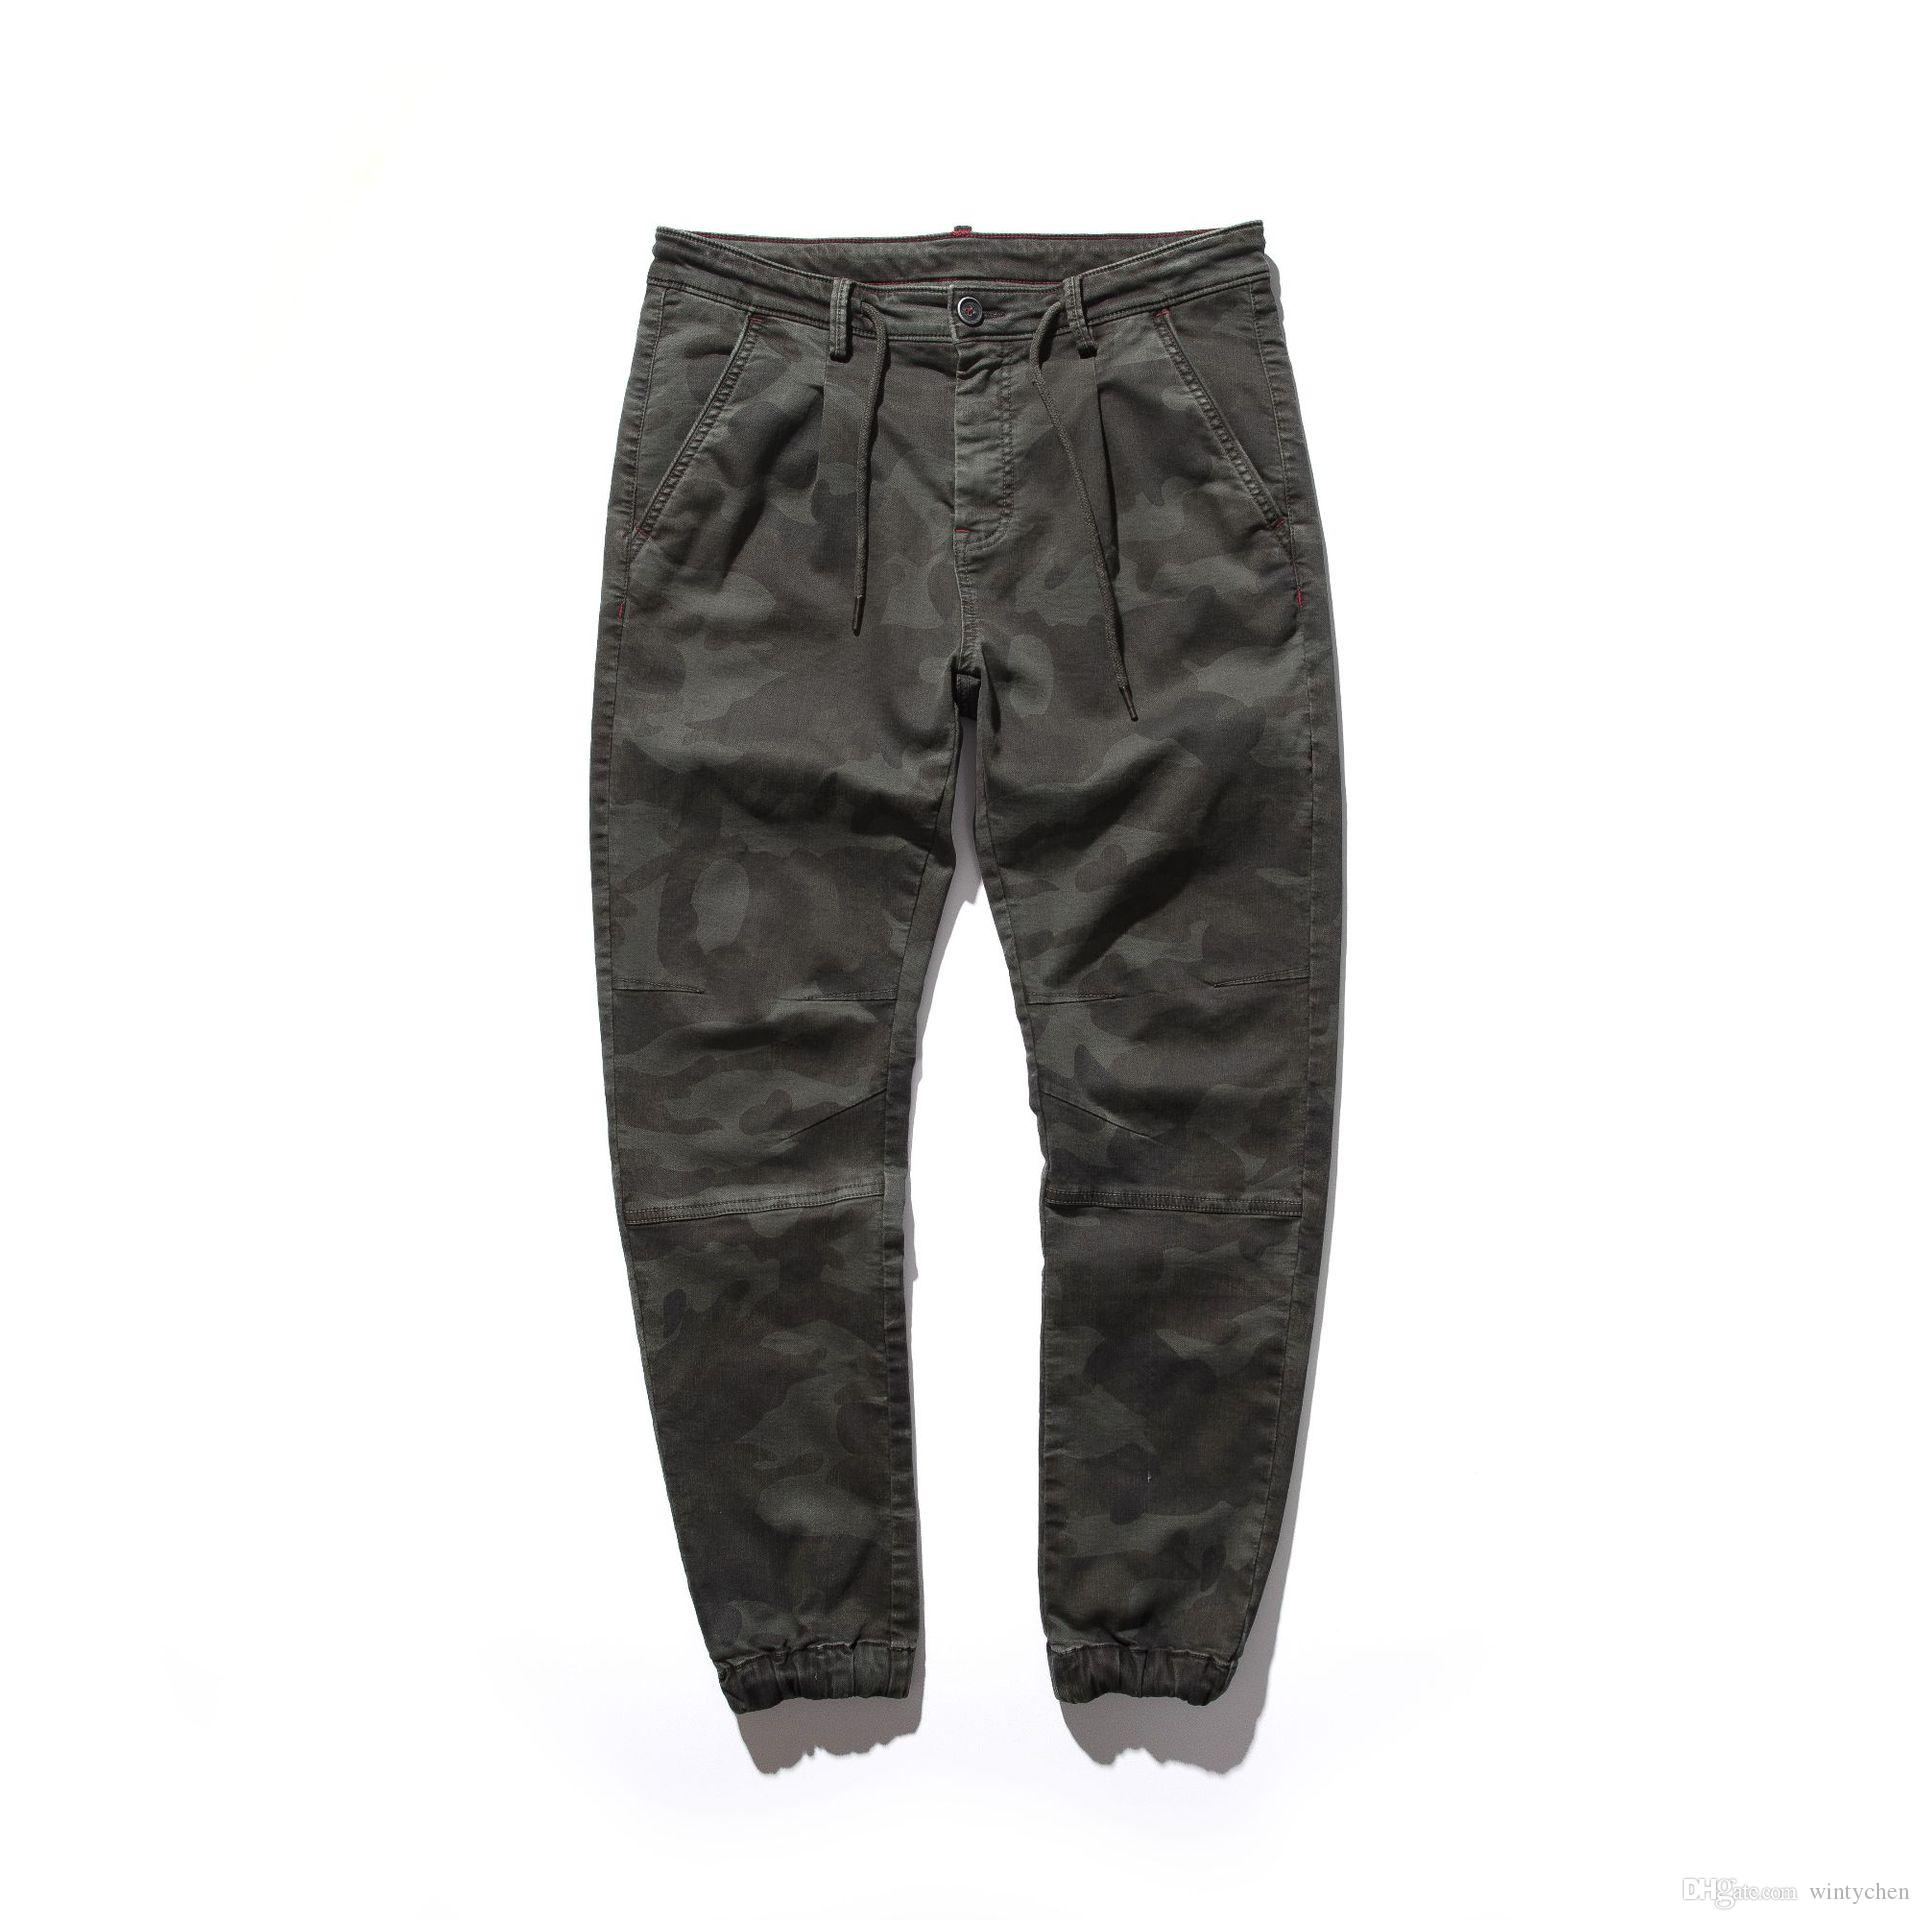 09bd6320b134 2019 Mens Cargo Pants Casual Cotton Pants Military Style Overalls Long Trousers  Men Plus Size Loose Tactical Pants High Quality F40 From Wintychen